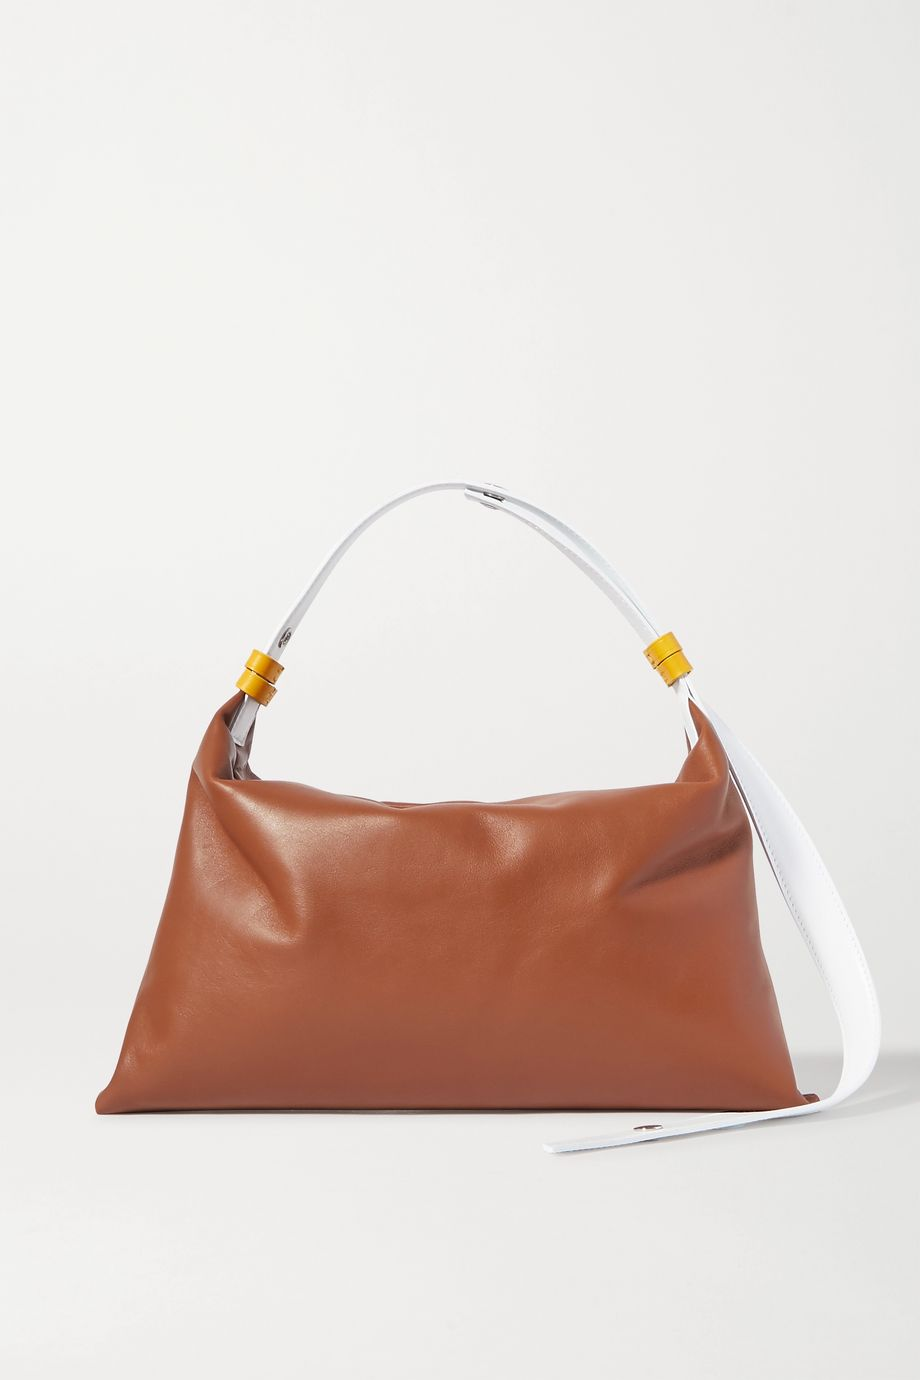 SIMON MILLER Puffin two-tone leather shoulder bag